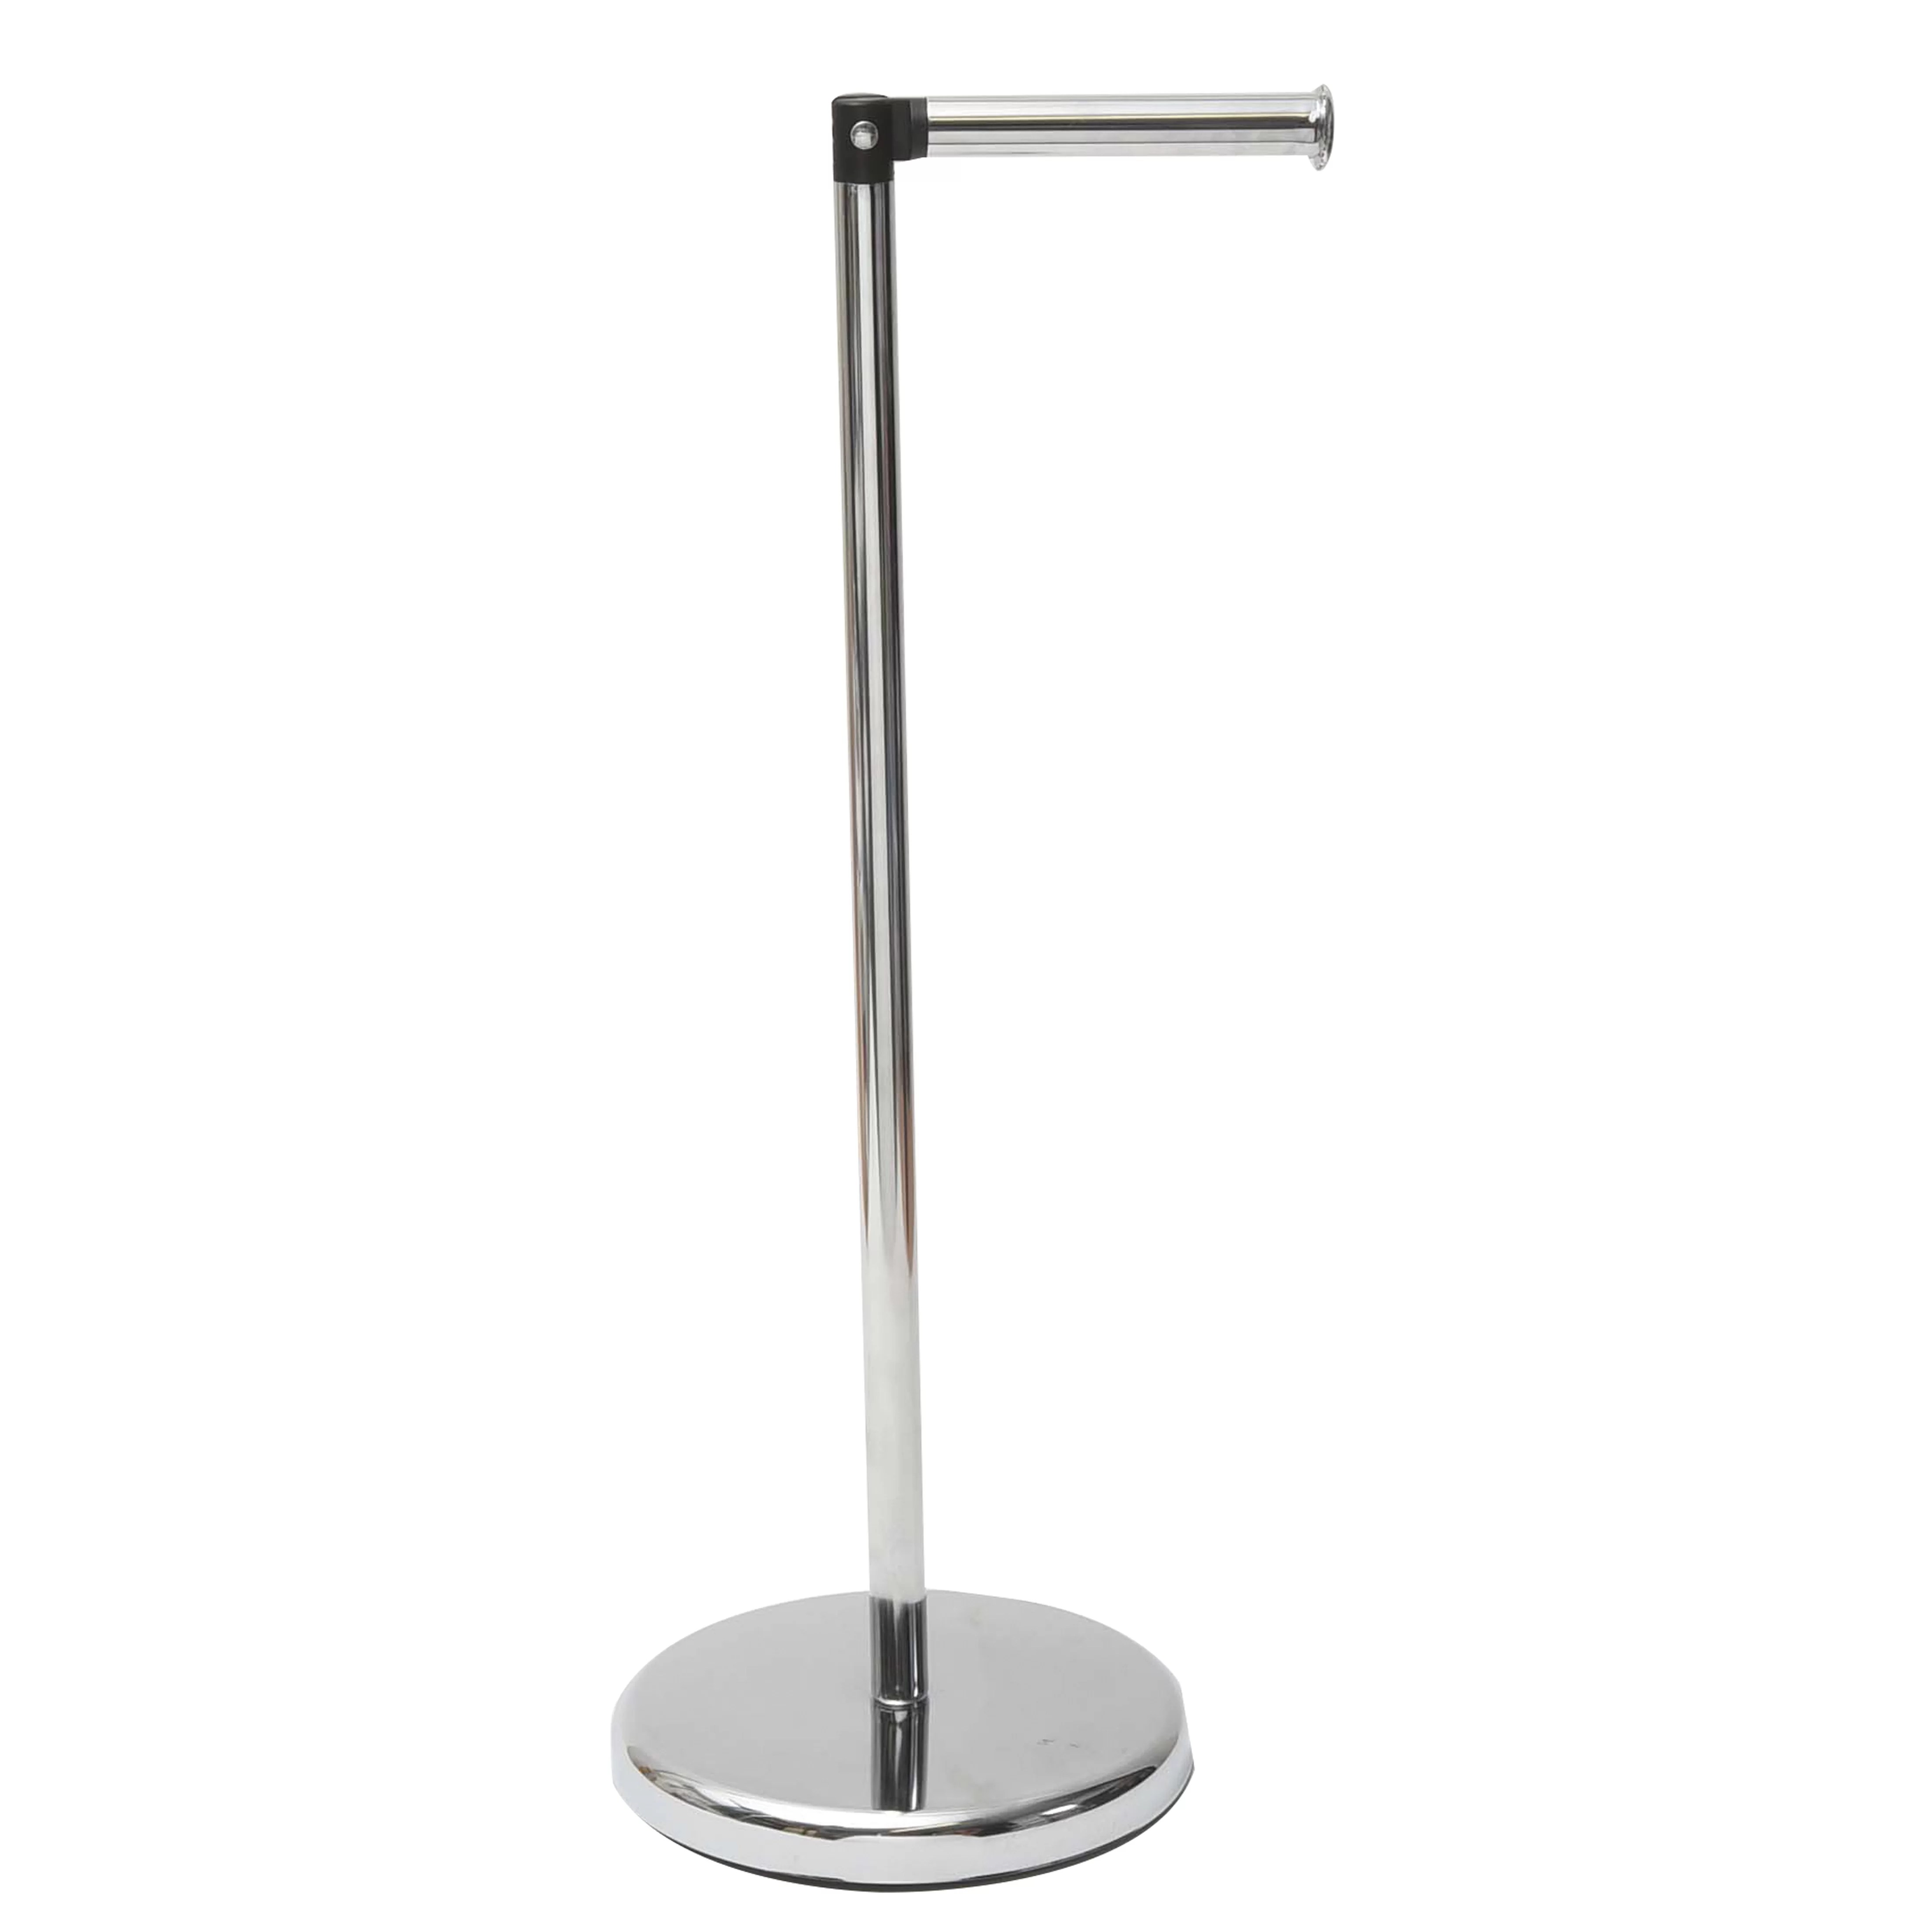 Free Standing Toilet Paper Holder Evideco Freestanding Toilet Paper Holder And Reviews Wayfair